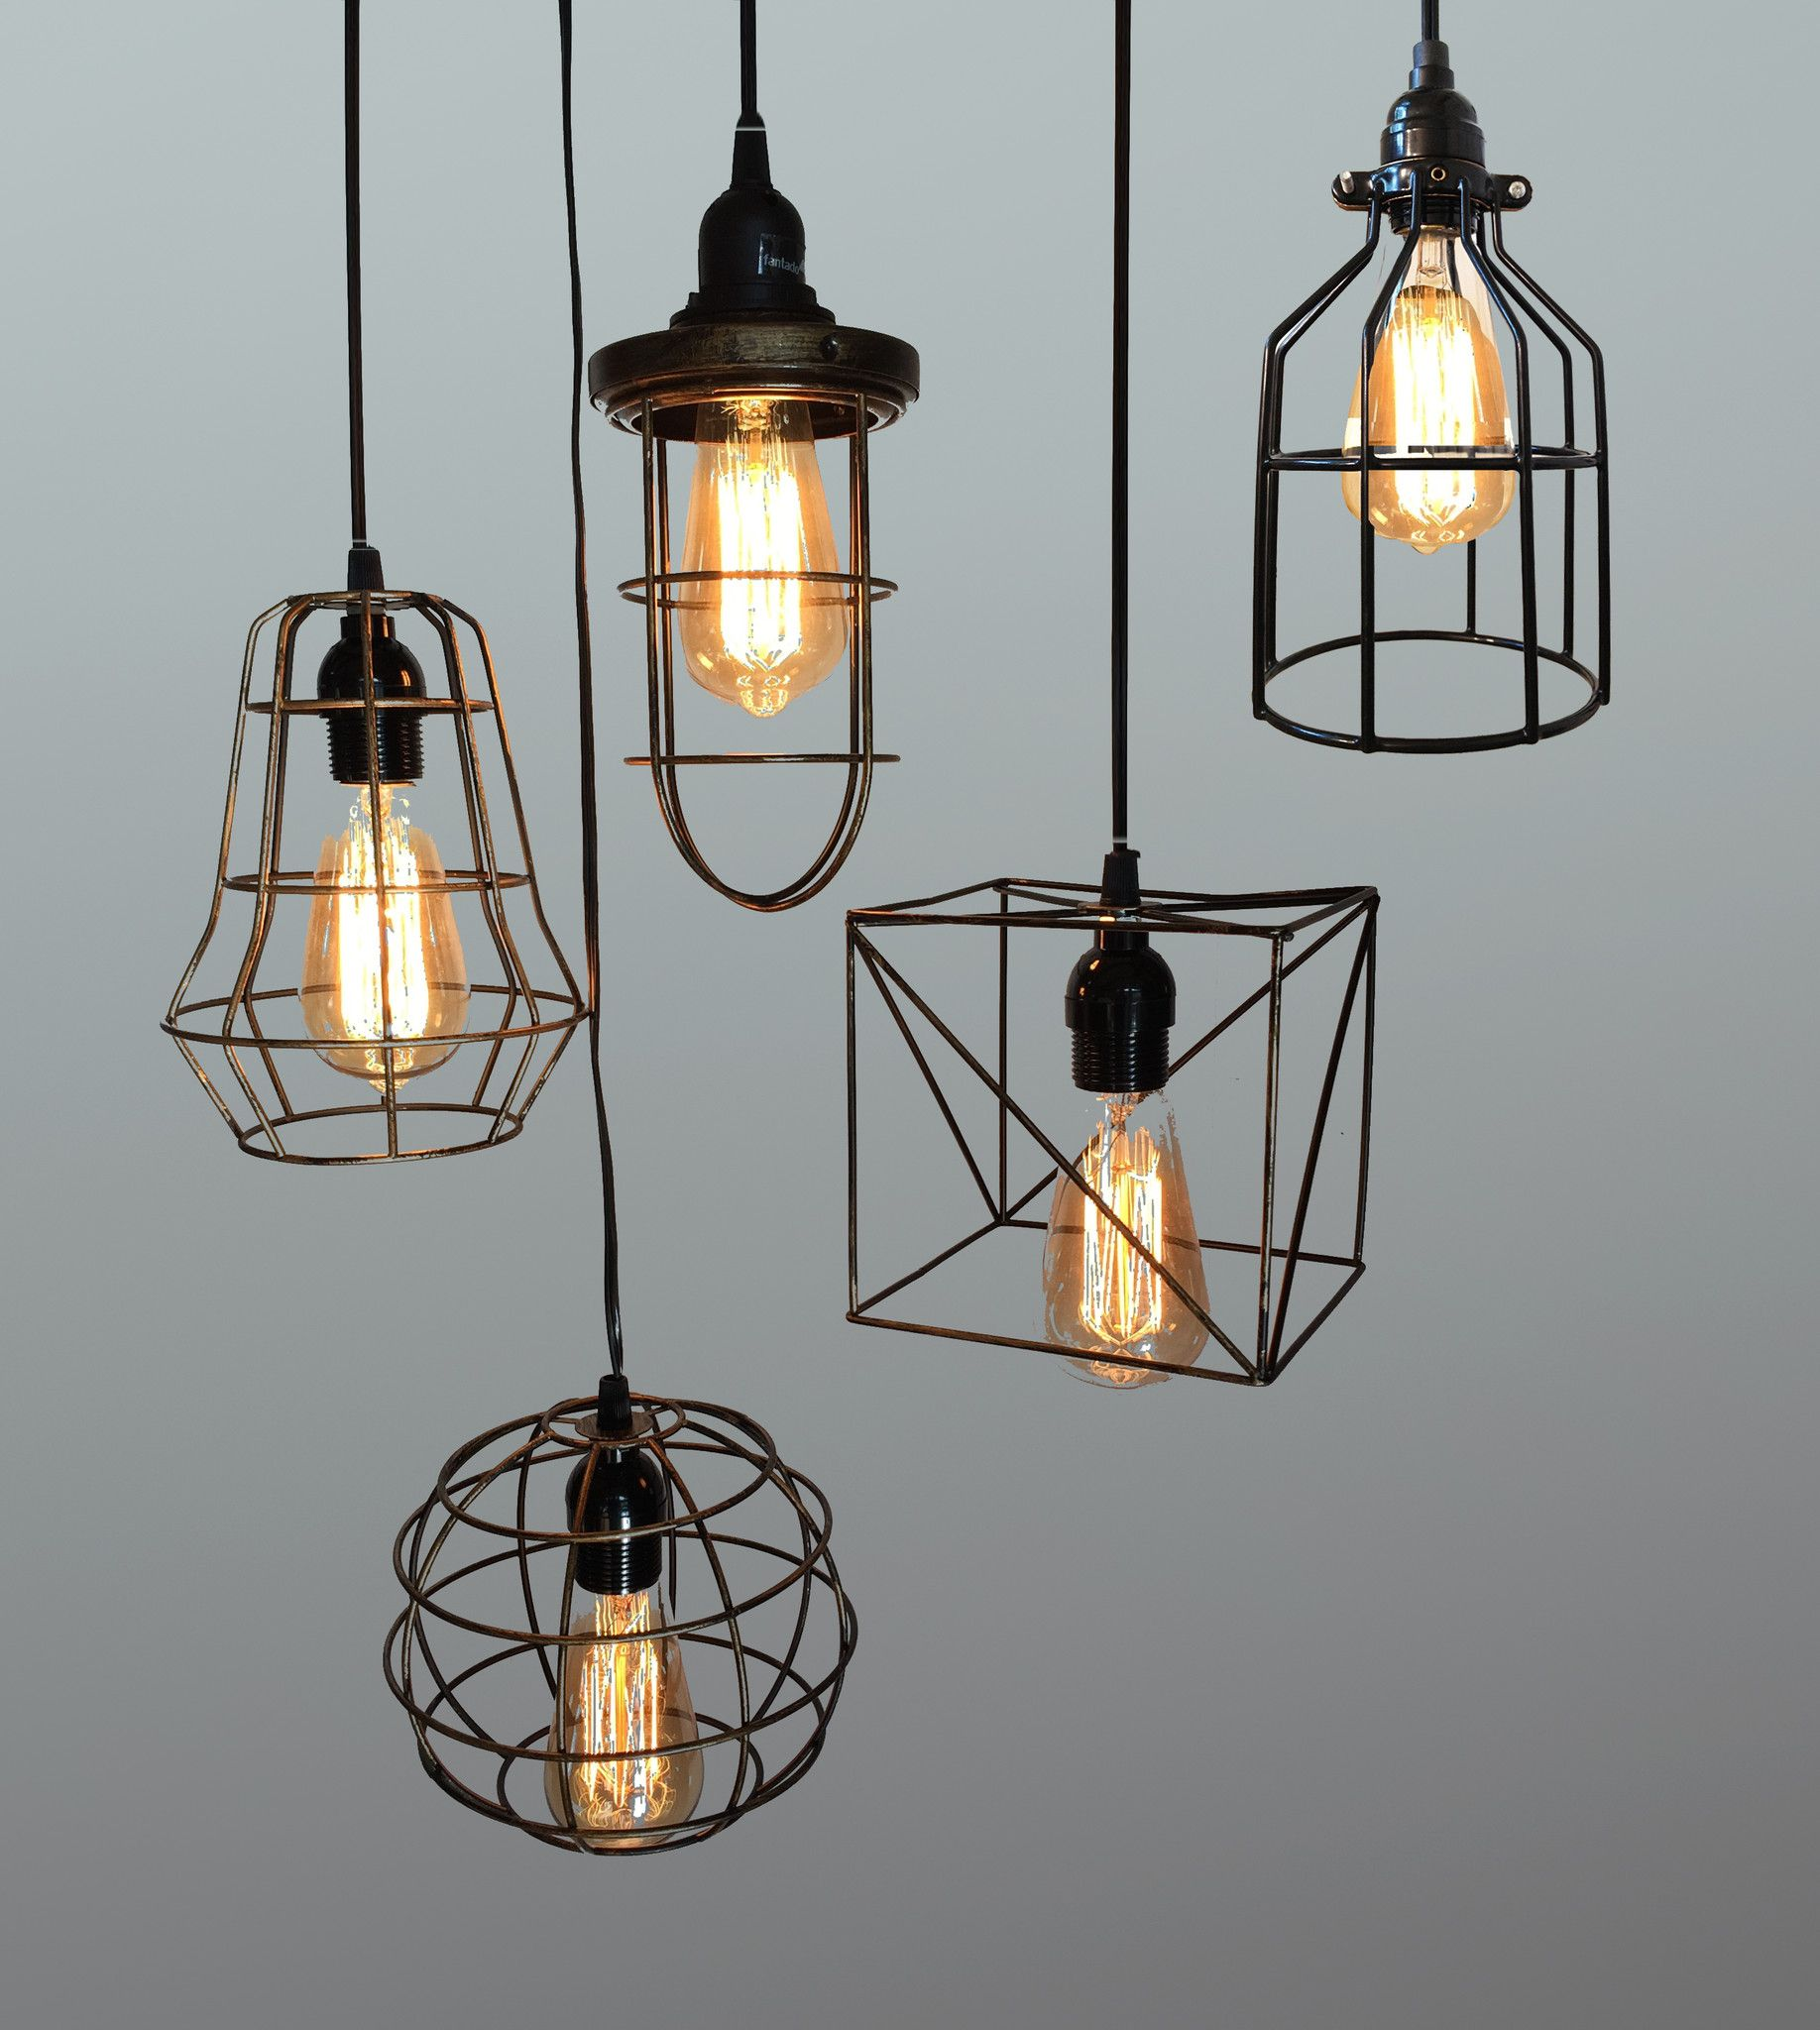 Product Image Rustic Pendant Lamp Light Industrial Cage Light